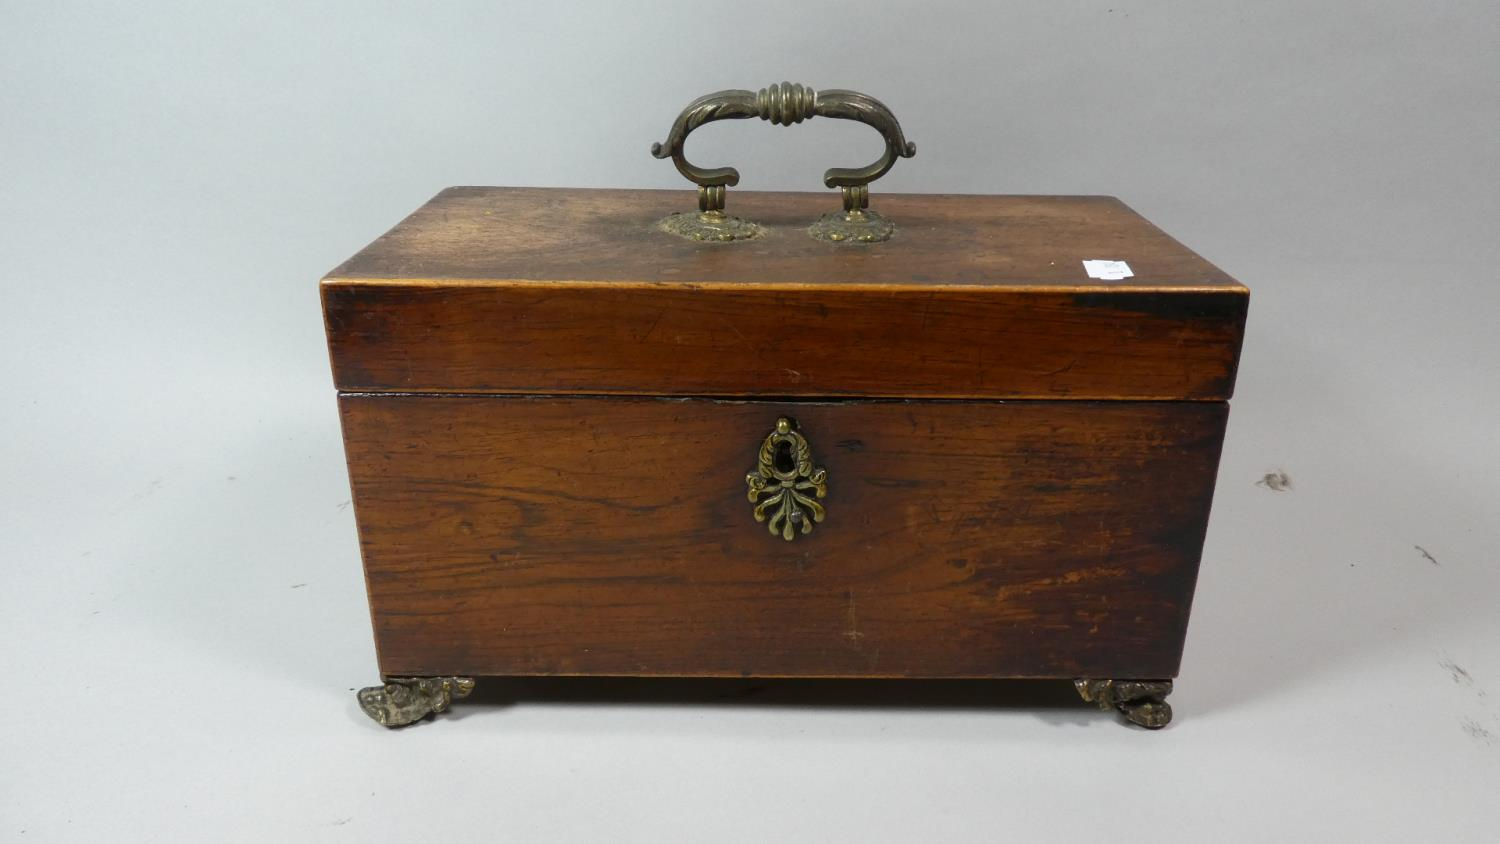 Lot 17 - A 19th Century Two Division Rosewood Tea Caddy with Ormolu Claw Feet, Carrying Handle and